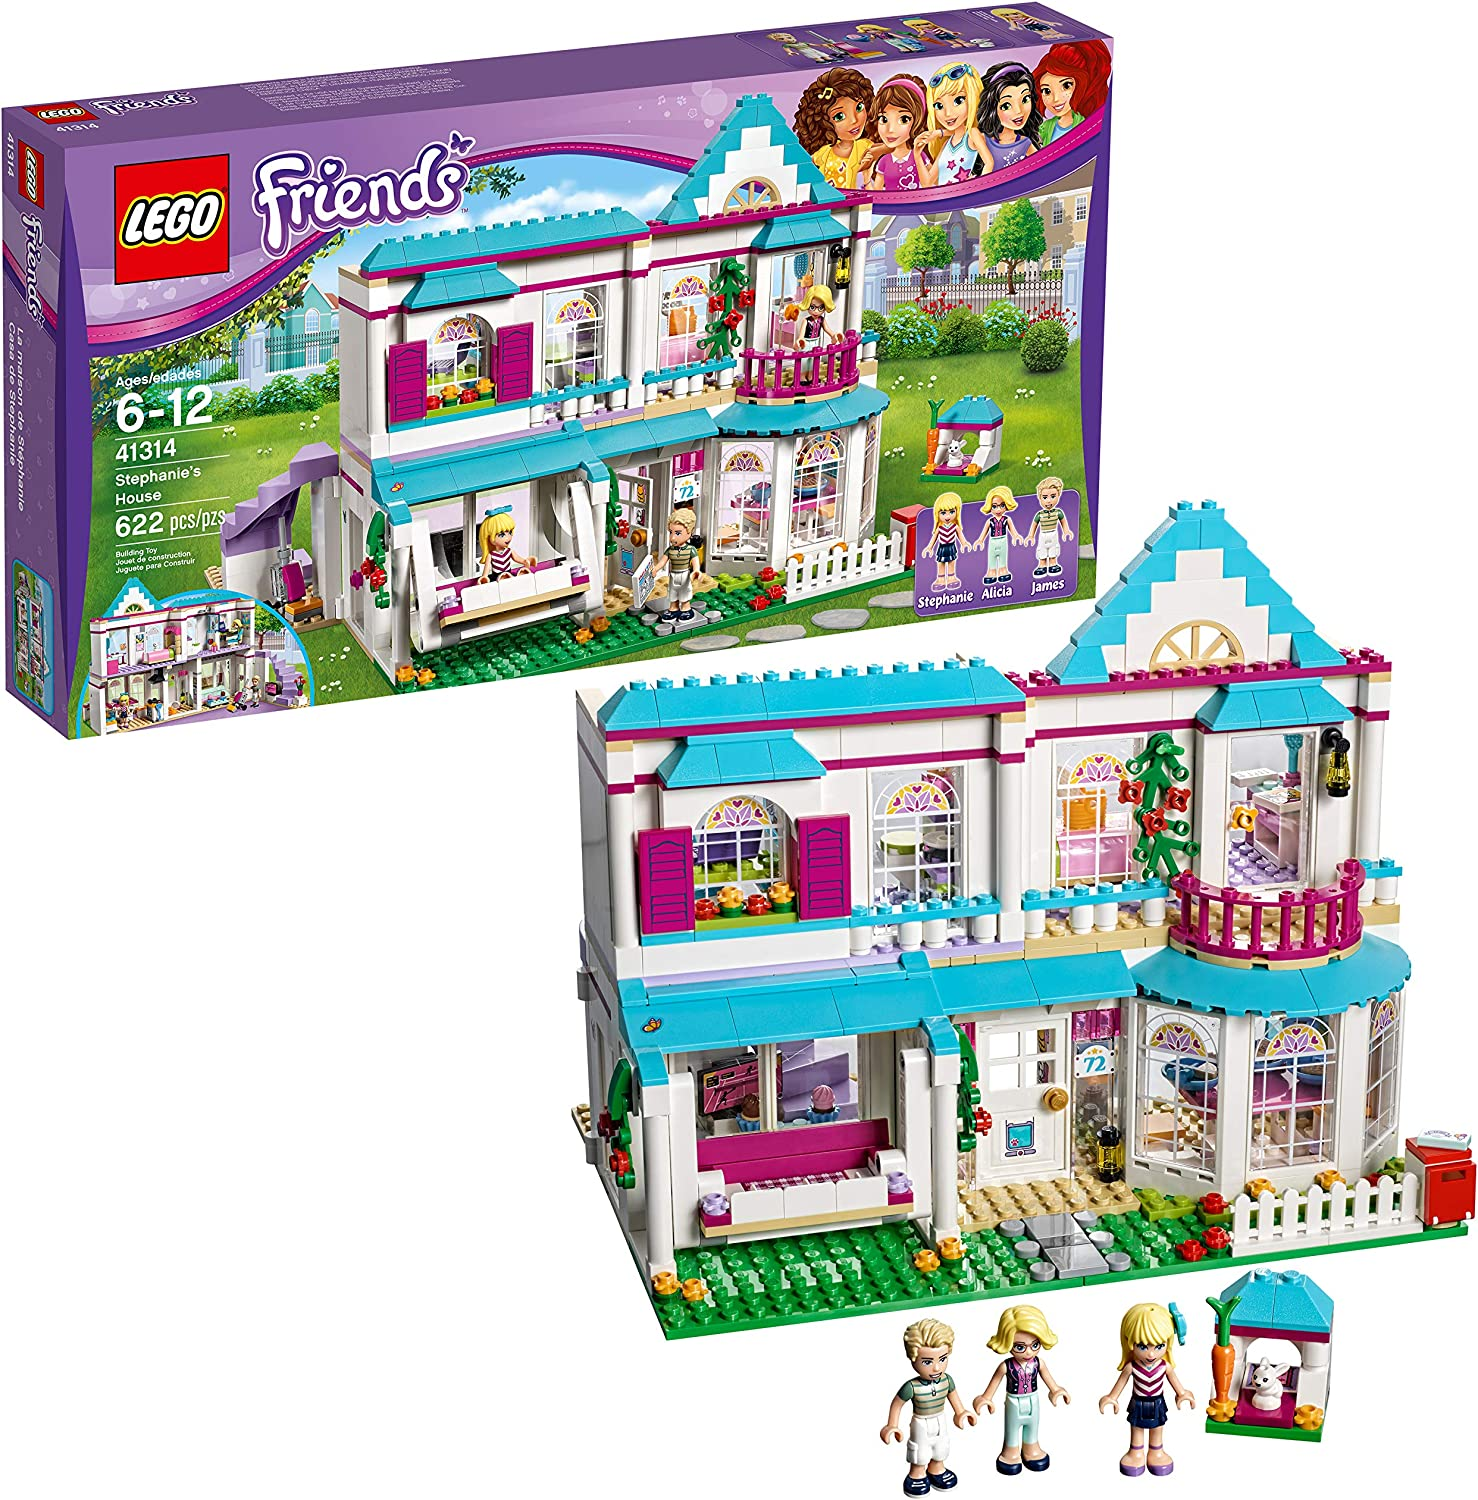 Amazon Com Lego Friends Stephanie S House 41314 Build And Play Toy House With Mini Dolls Dollhouse Kit 622 Pieces Toys Games